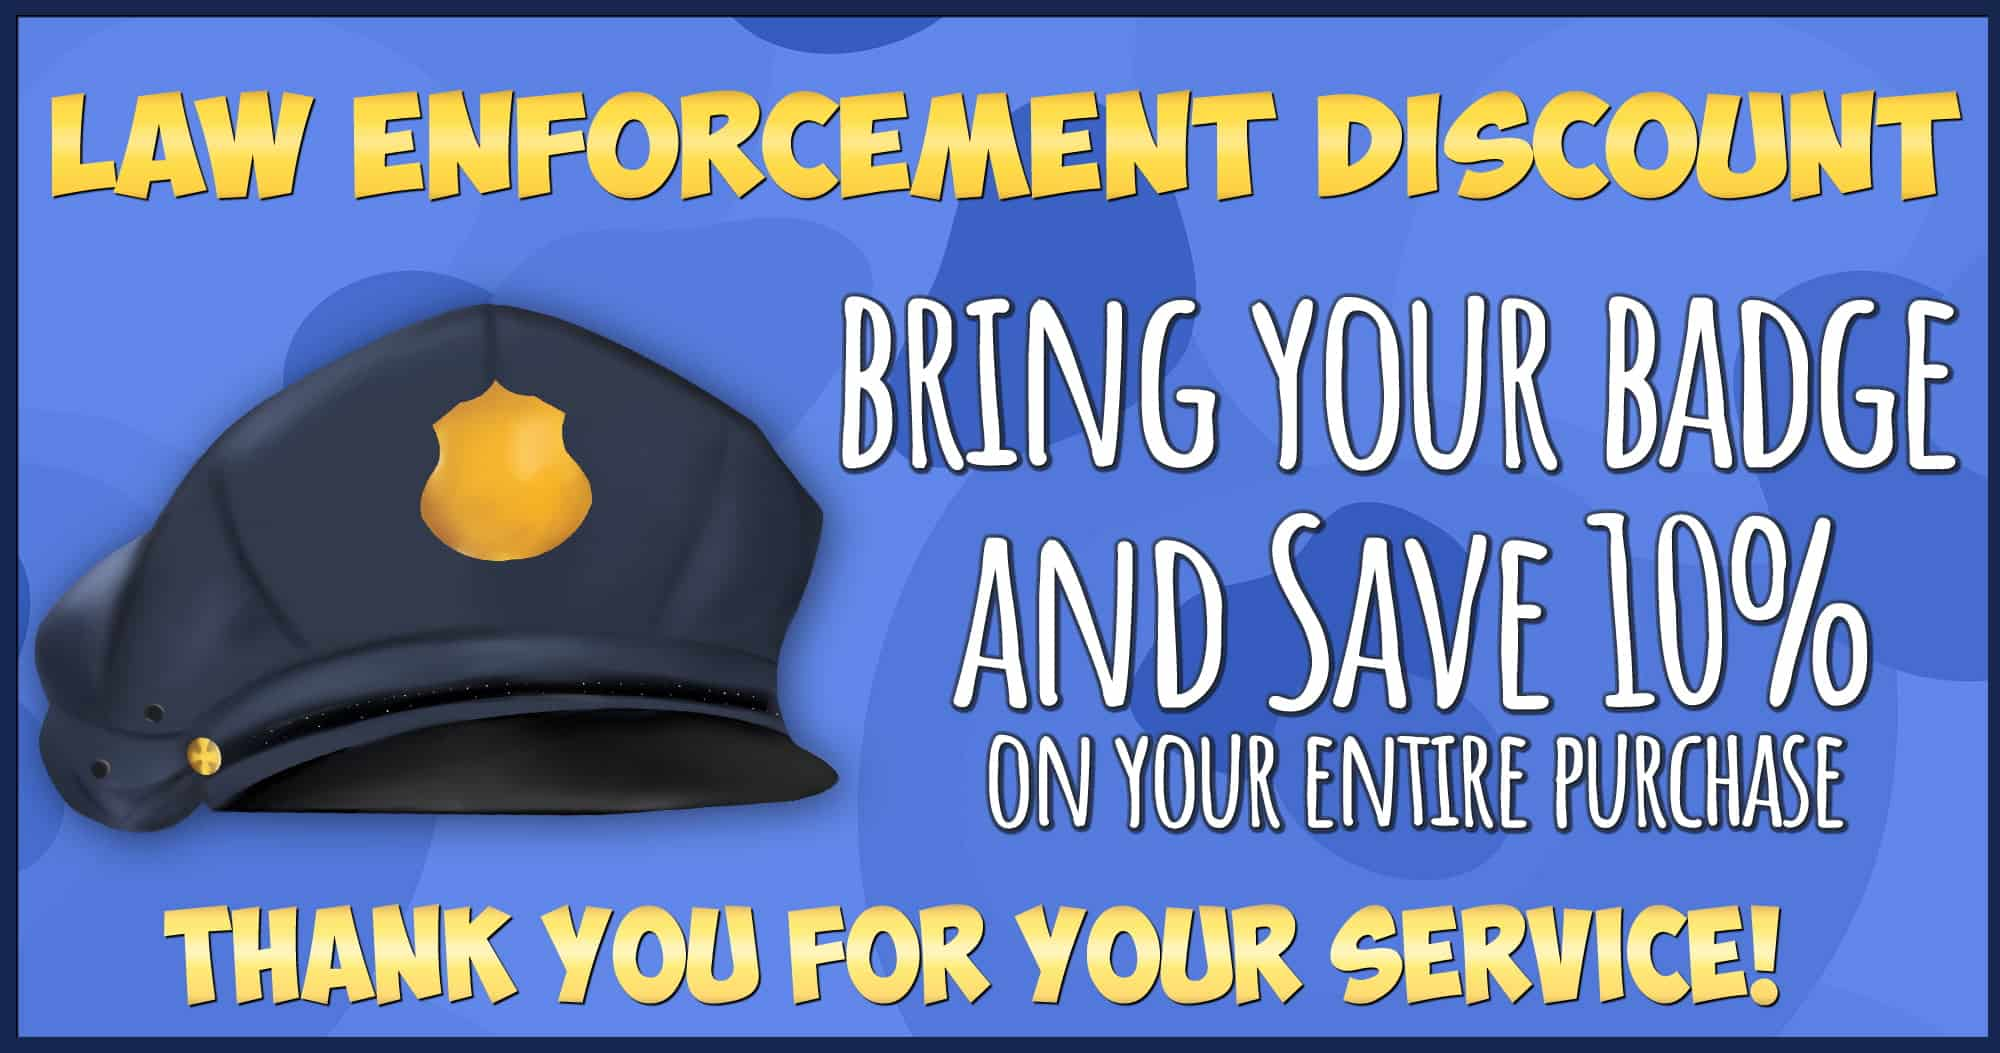 Law Enforcement Discount